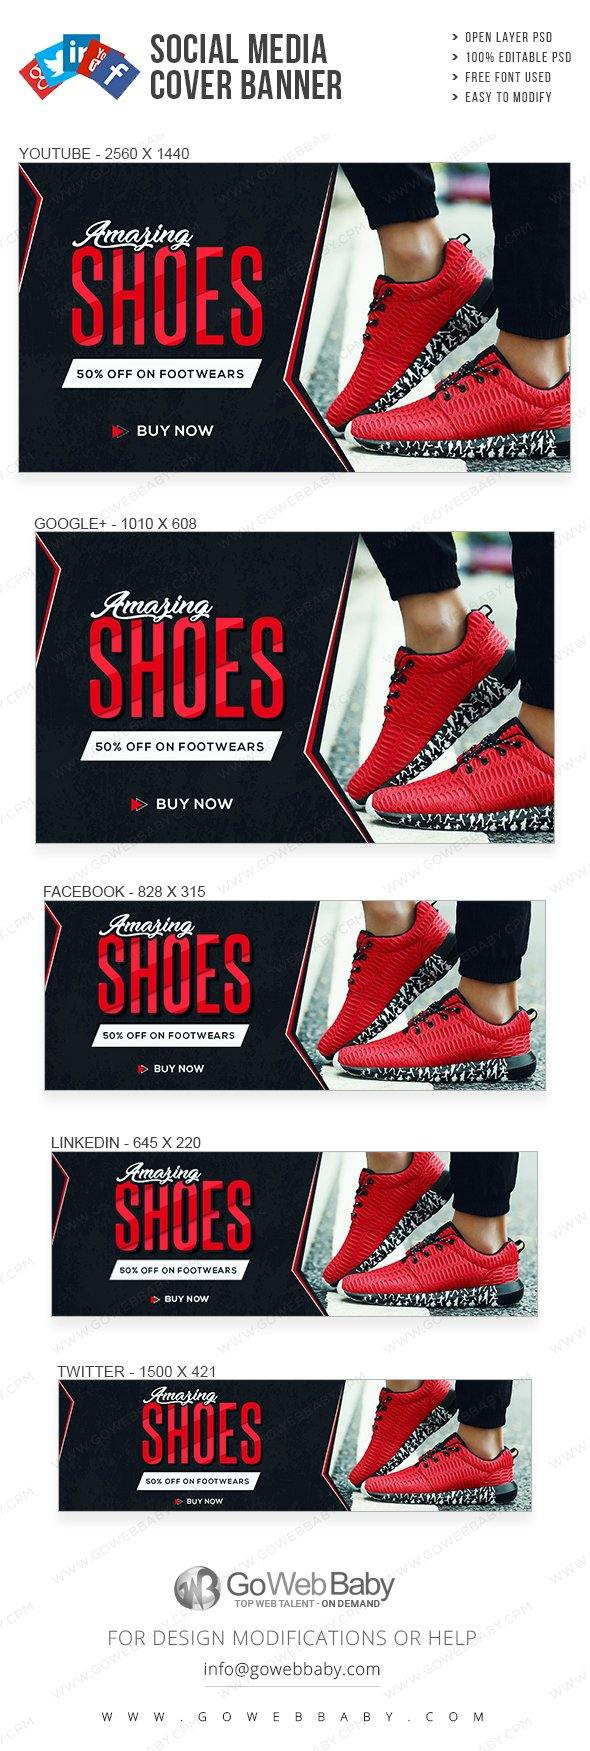 Social Media Cover Banner - Footwear For Website Marketing